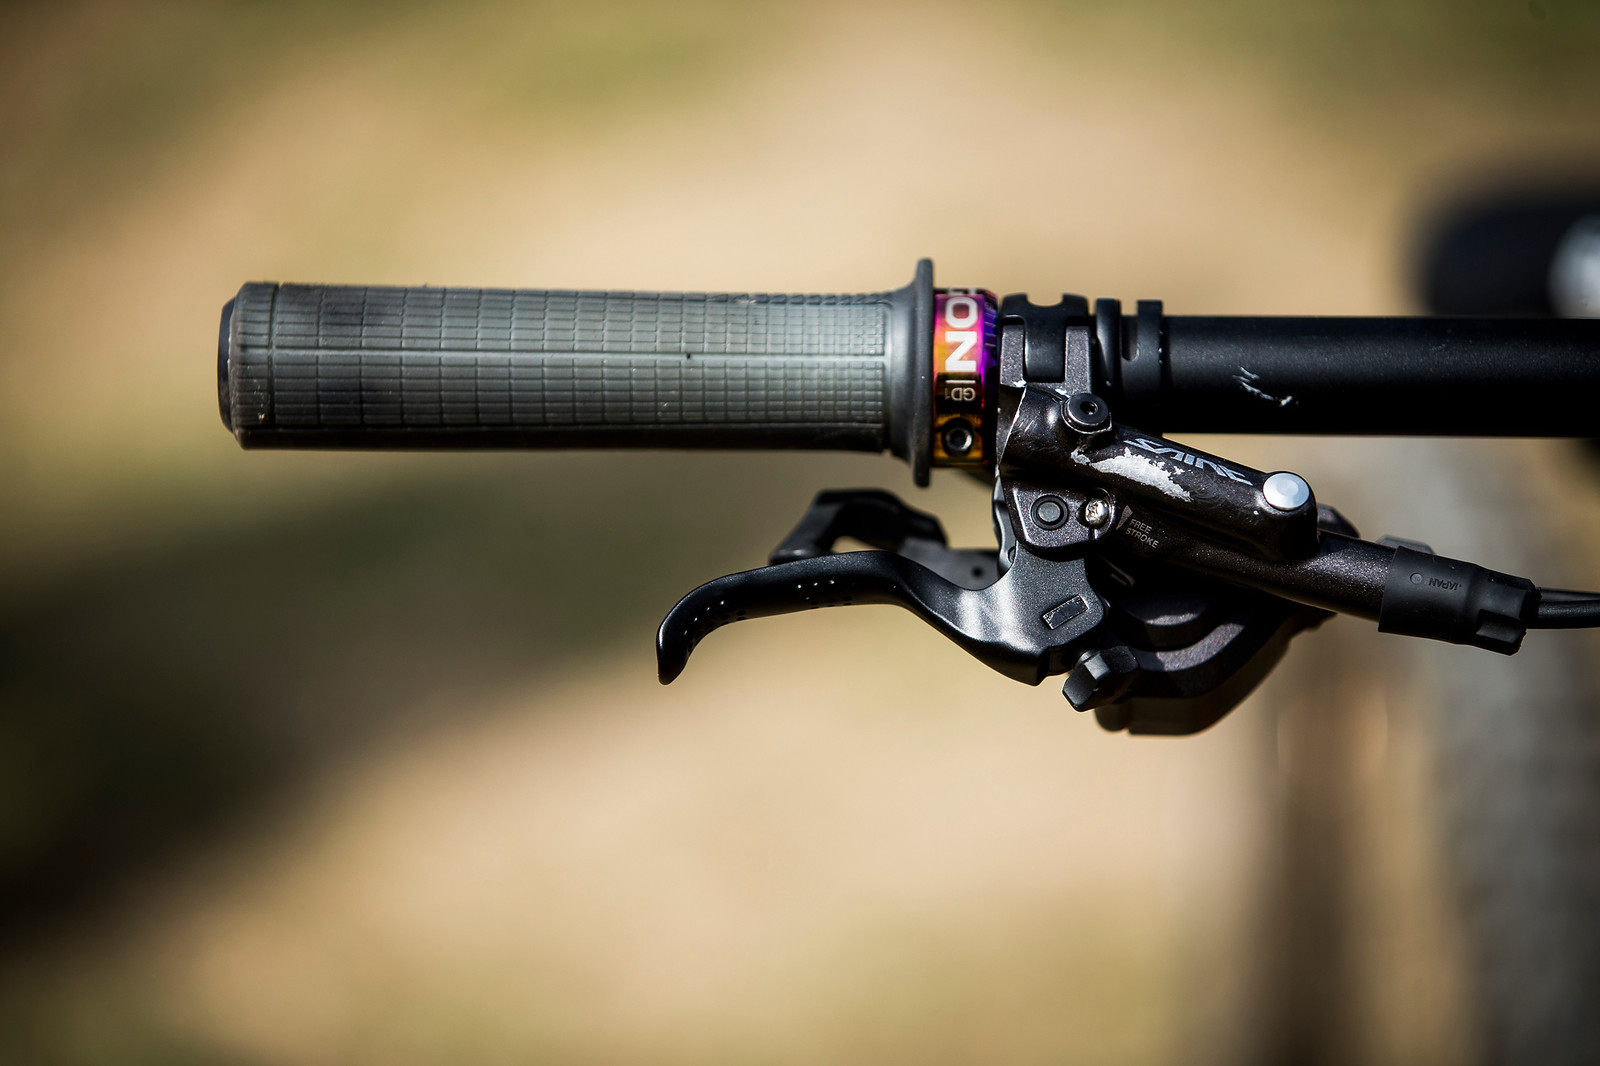 Ergon GD1 Grips and Shimano Saint Brake Levers - WINNING BIKE: Tahnee Seagrave's Transition TR11 - Mountain Biking Pictures - Vital MTB